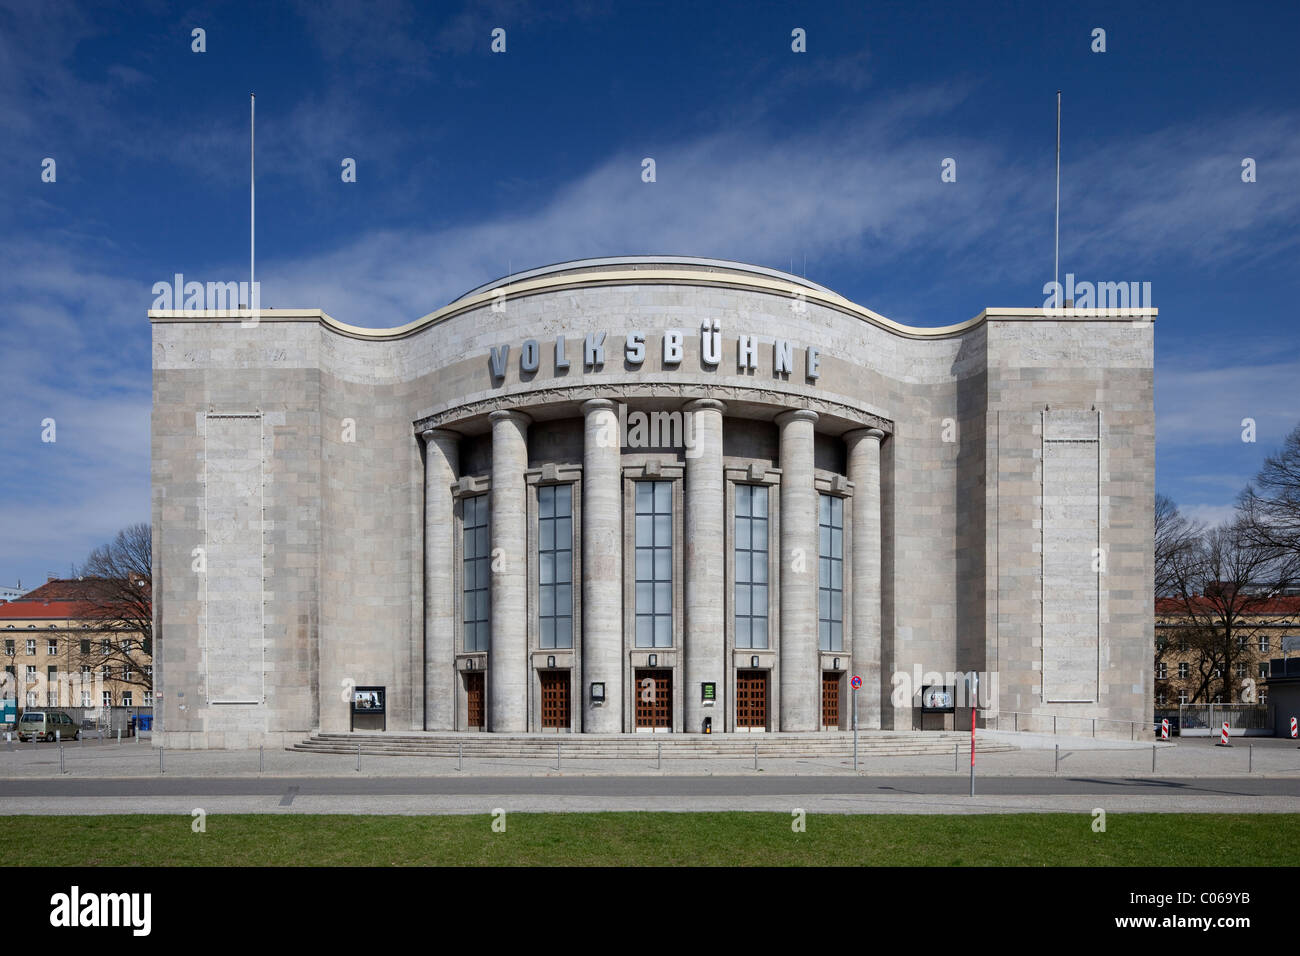 Volksbuehne Theatre on Rosa Luxemburg Square, Berlin-Mitte, Berlin, Germany, Europe - Stock Image